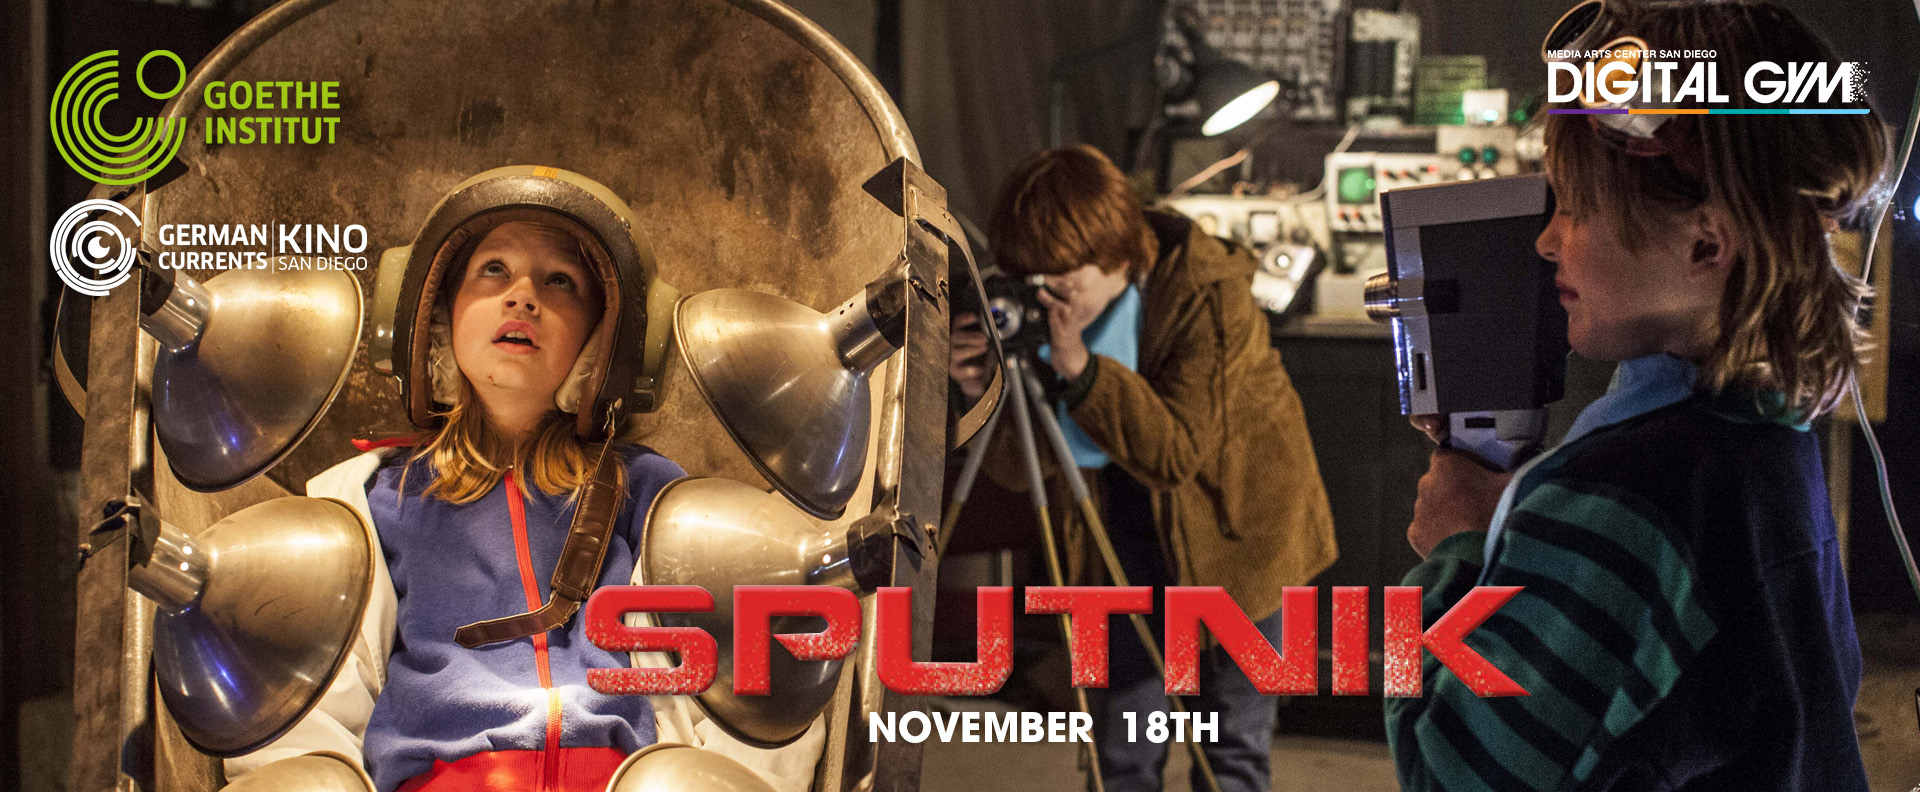 German Currents Kino: MISSION: SPUTNIK (November 18)